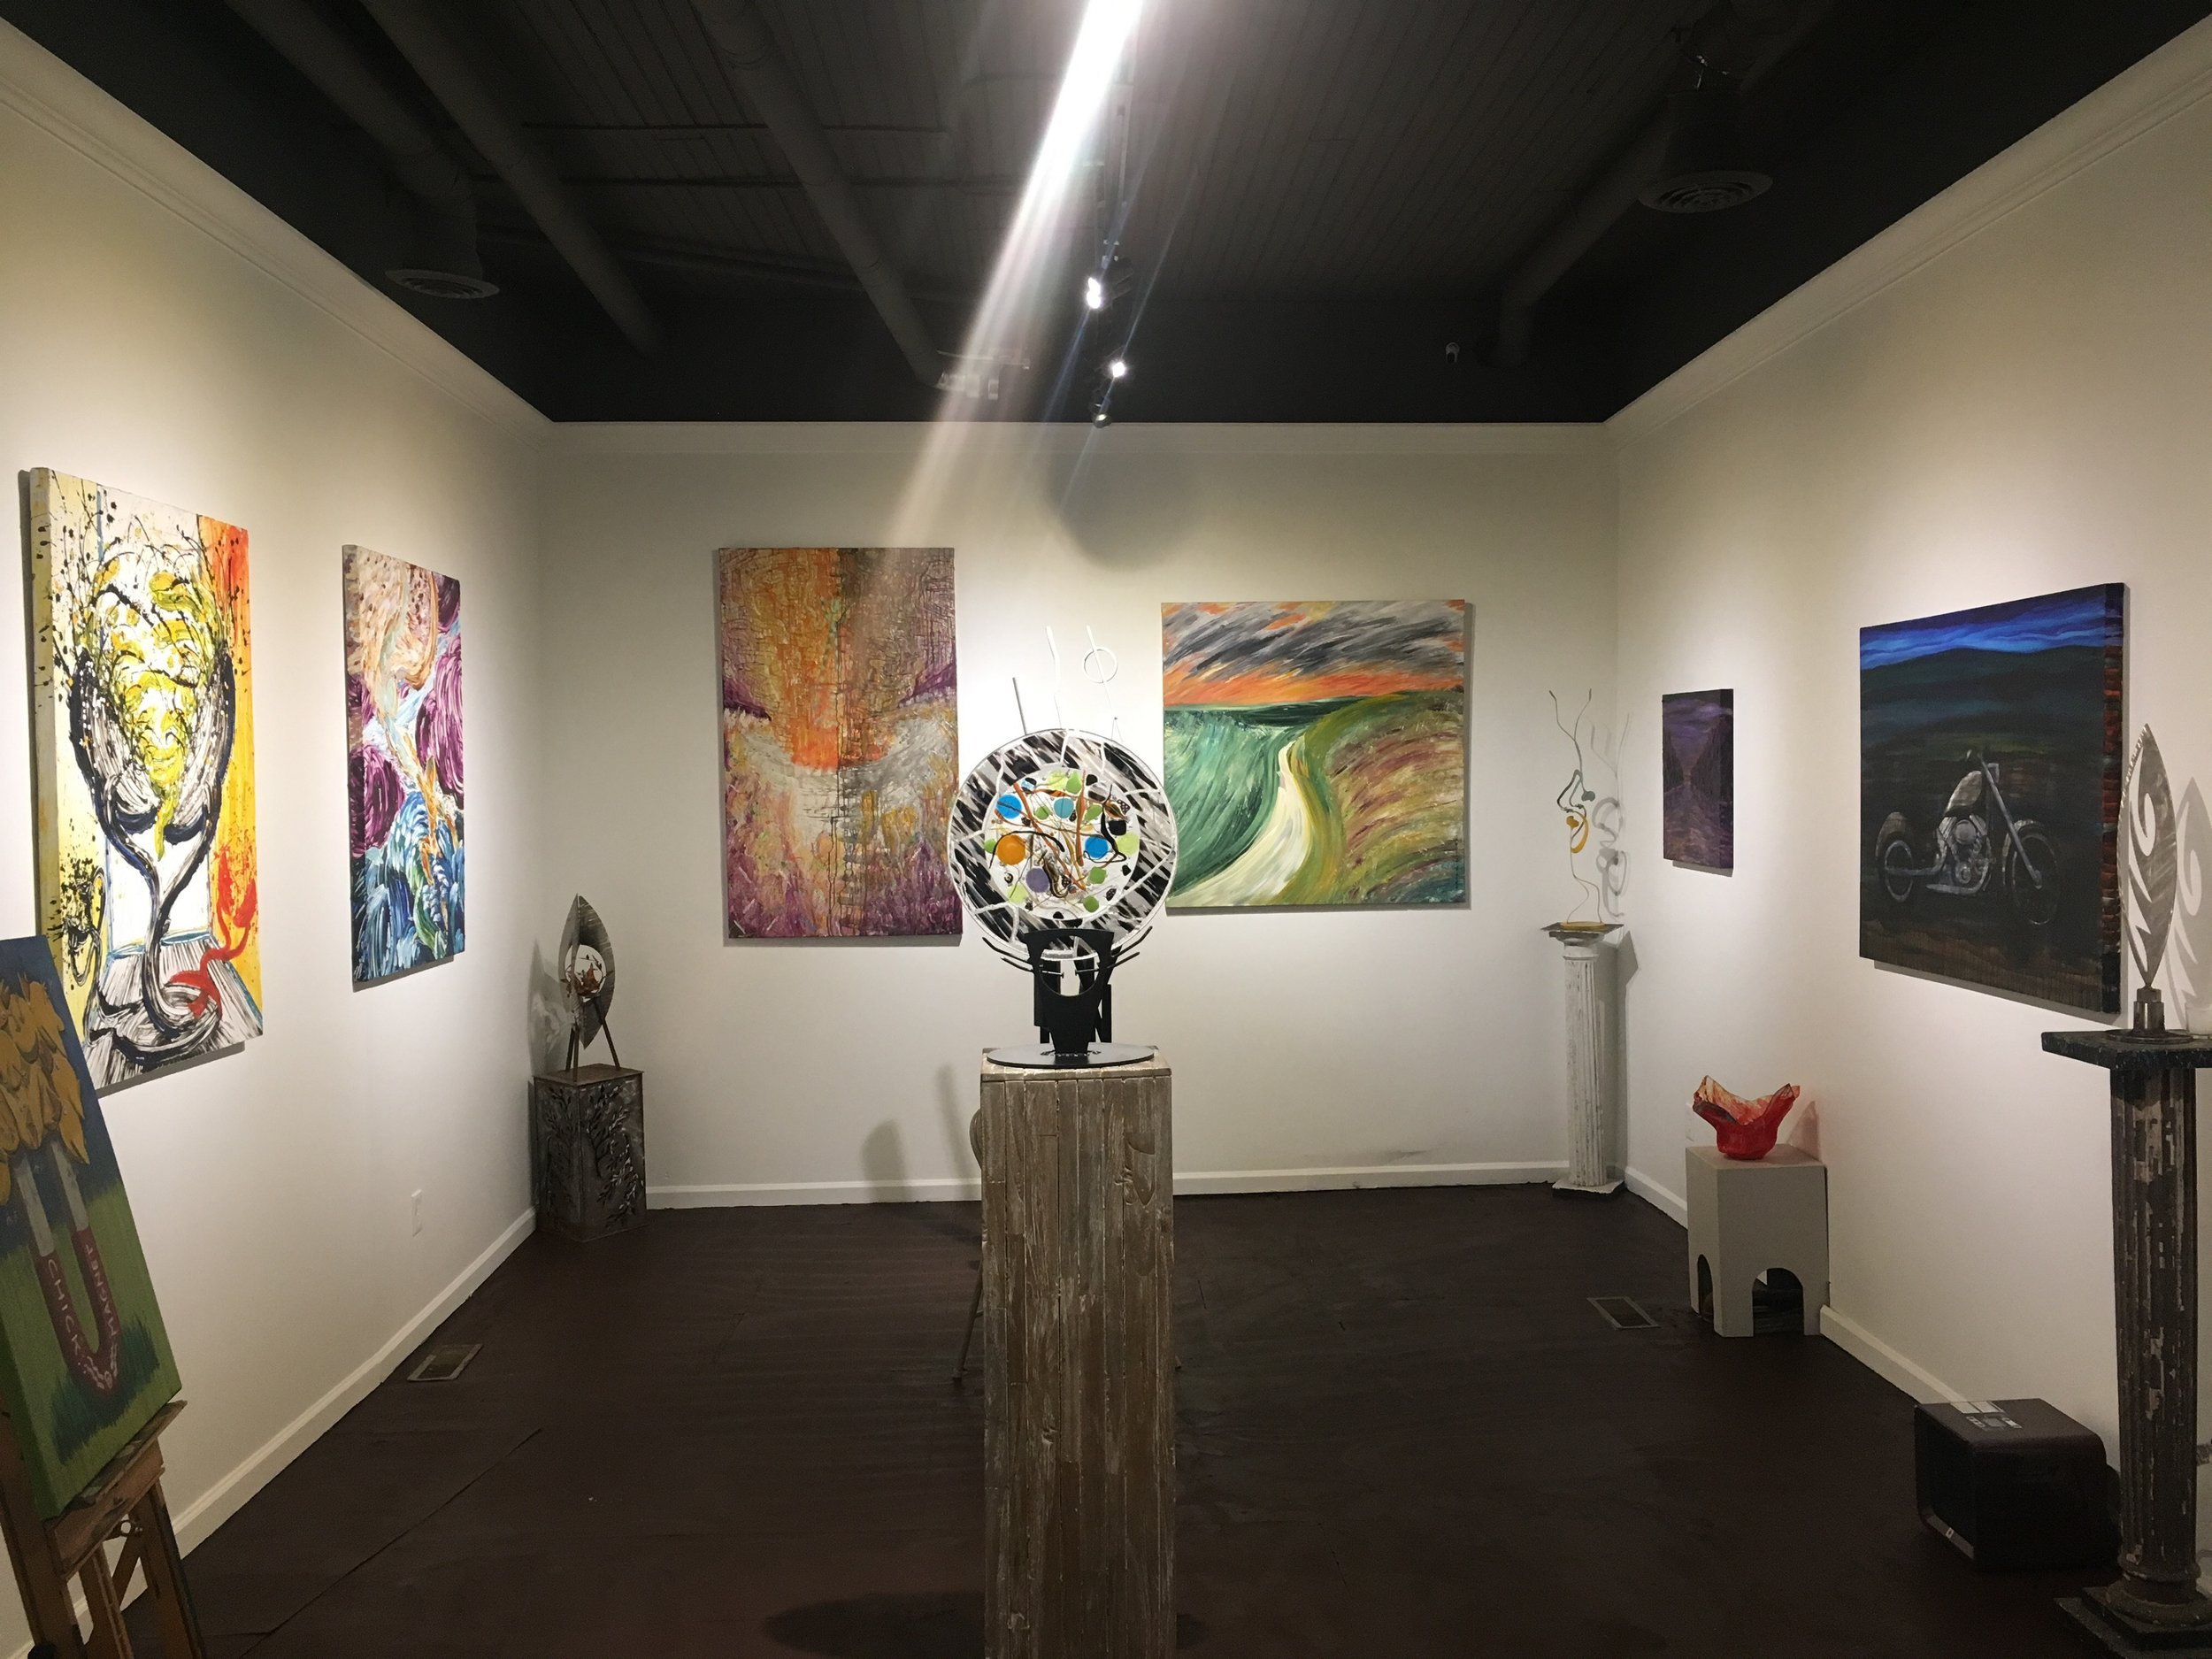 The Mark Groaning Opening Exhibit